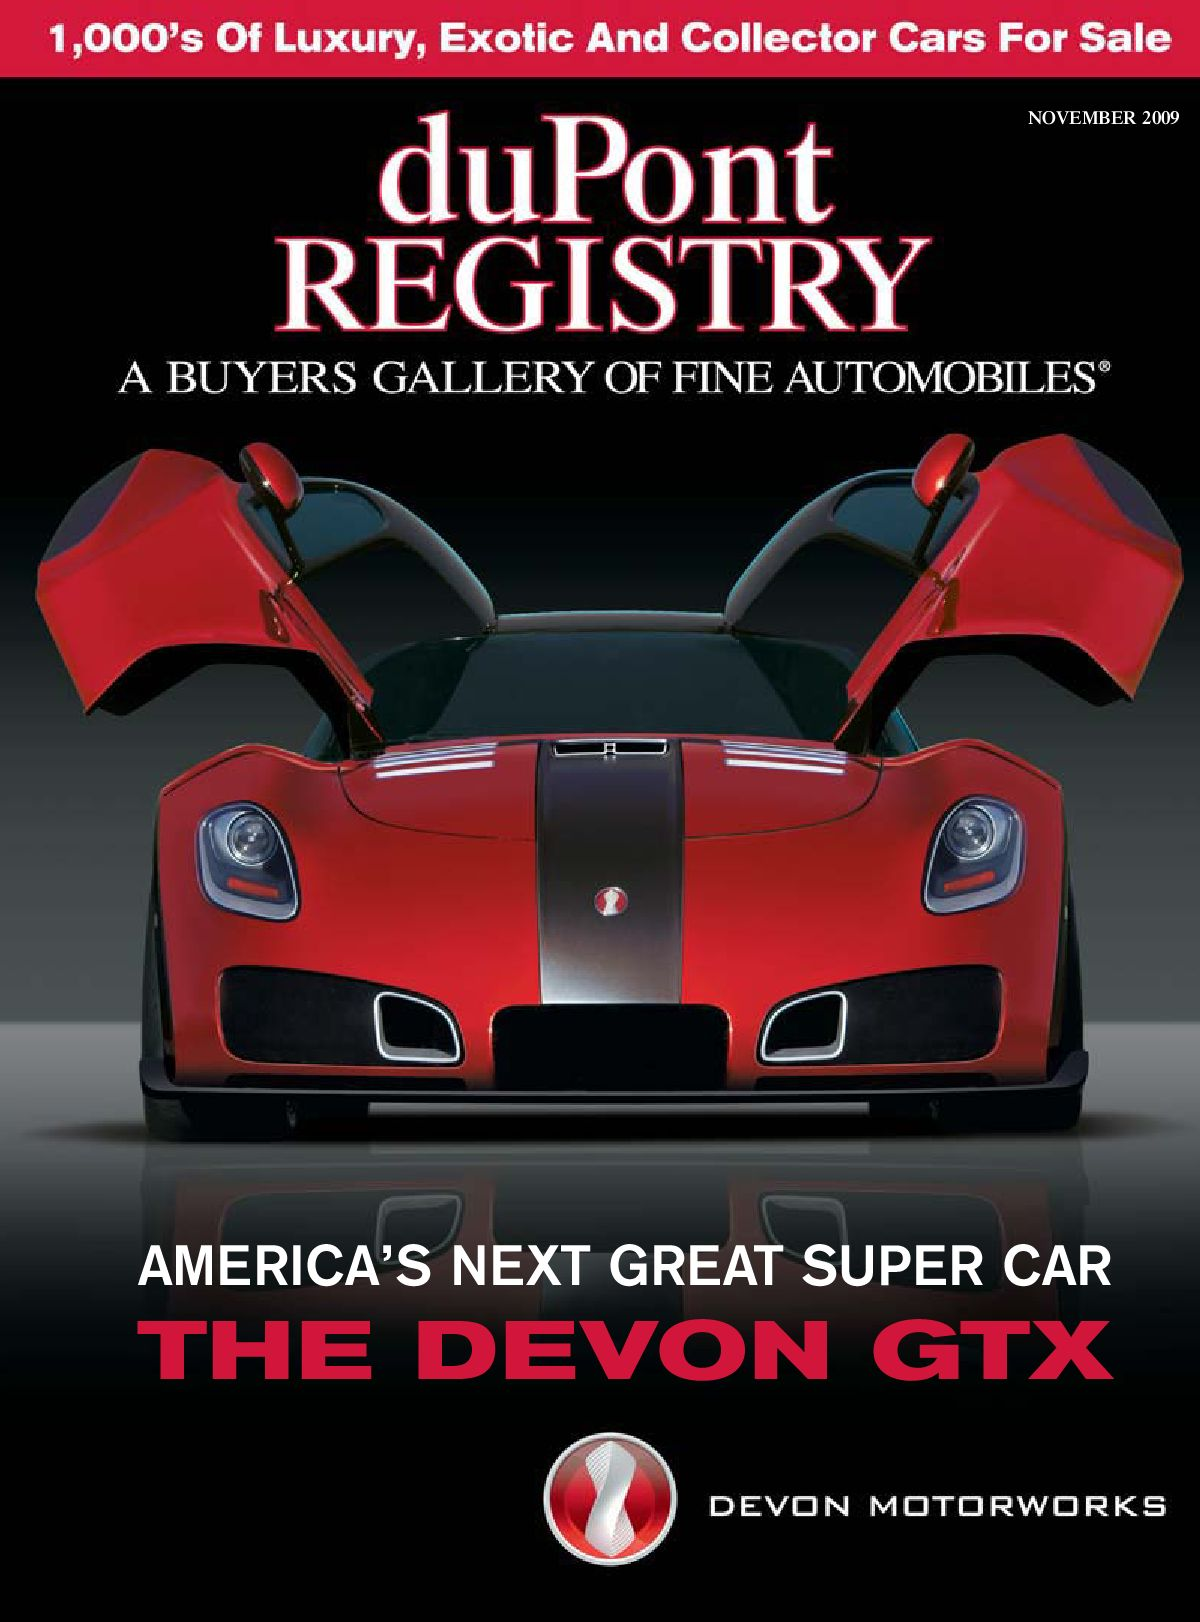 duPontREGISTRY Autos November 2009 by duPont REGISTRY issuu